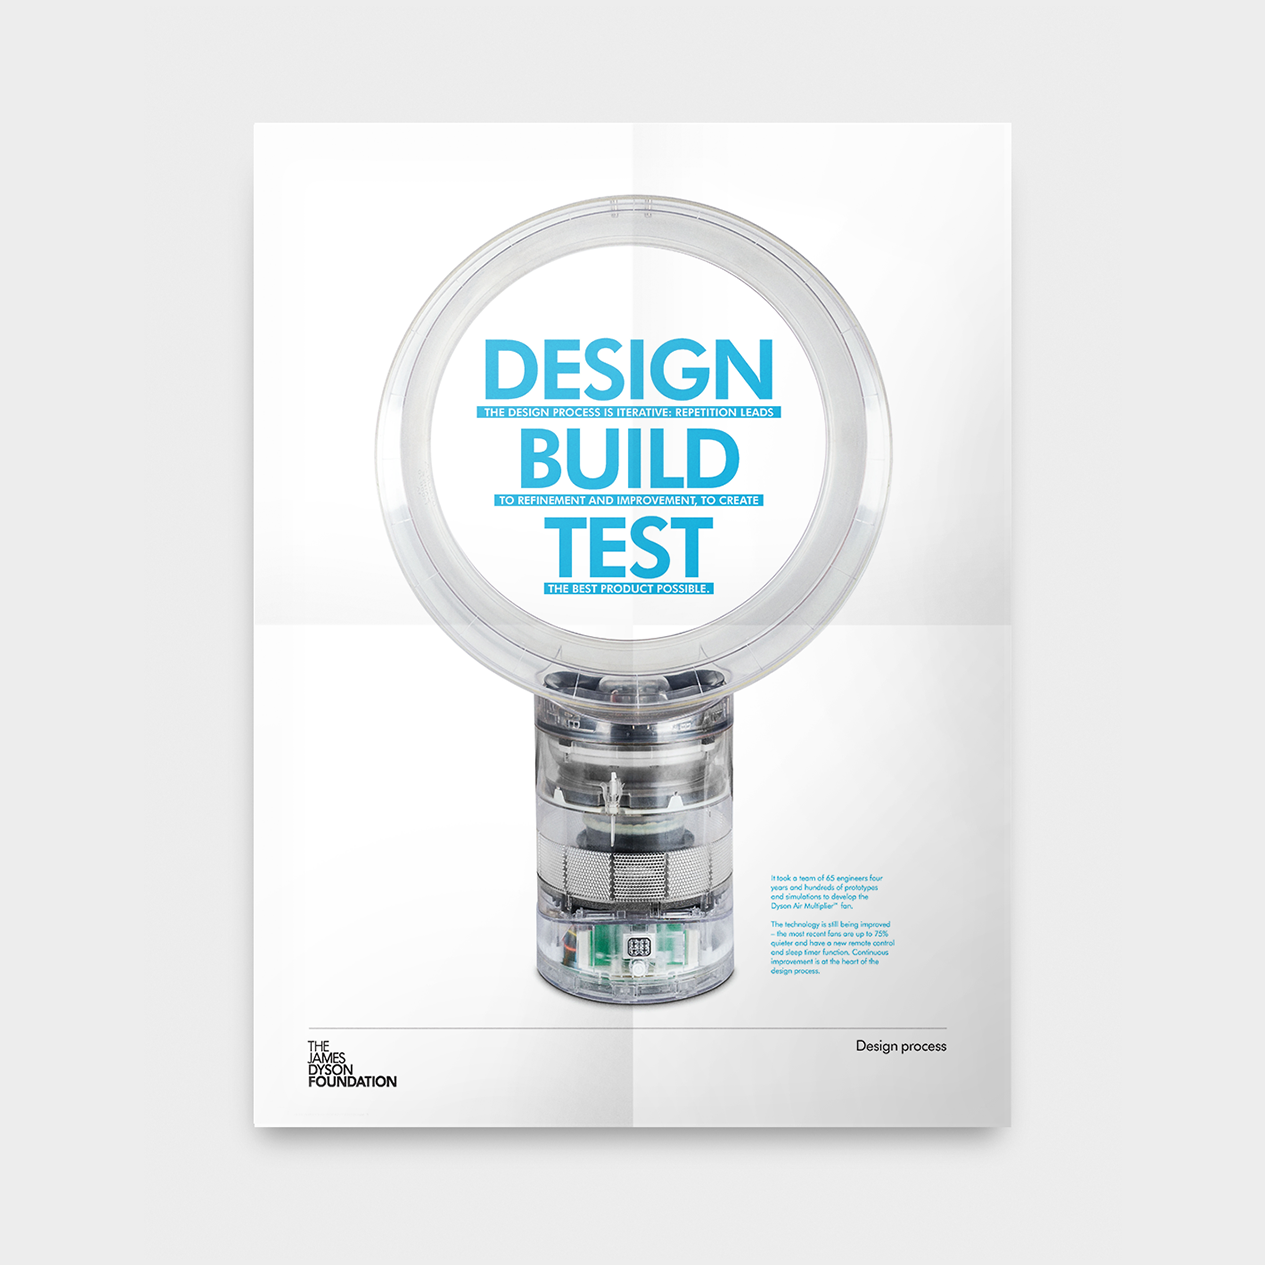 A poster from the Design Process Box featuring a Dyson Air Multiplier fan and the words Design, Build, Test